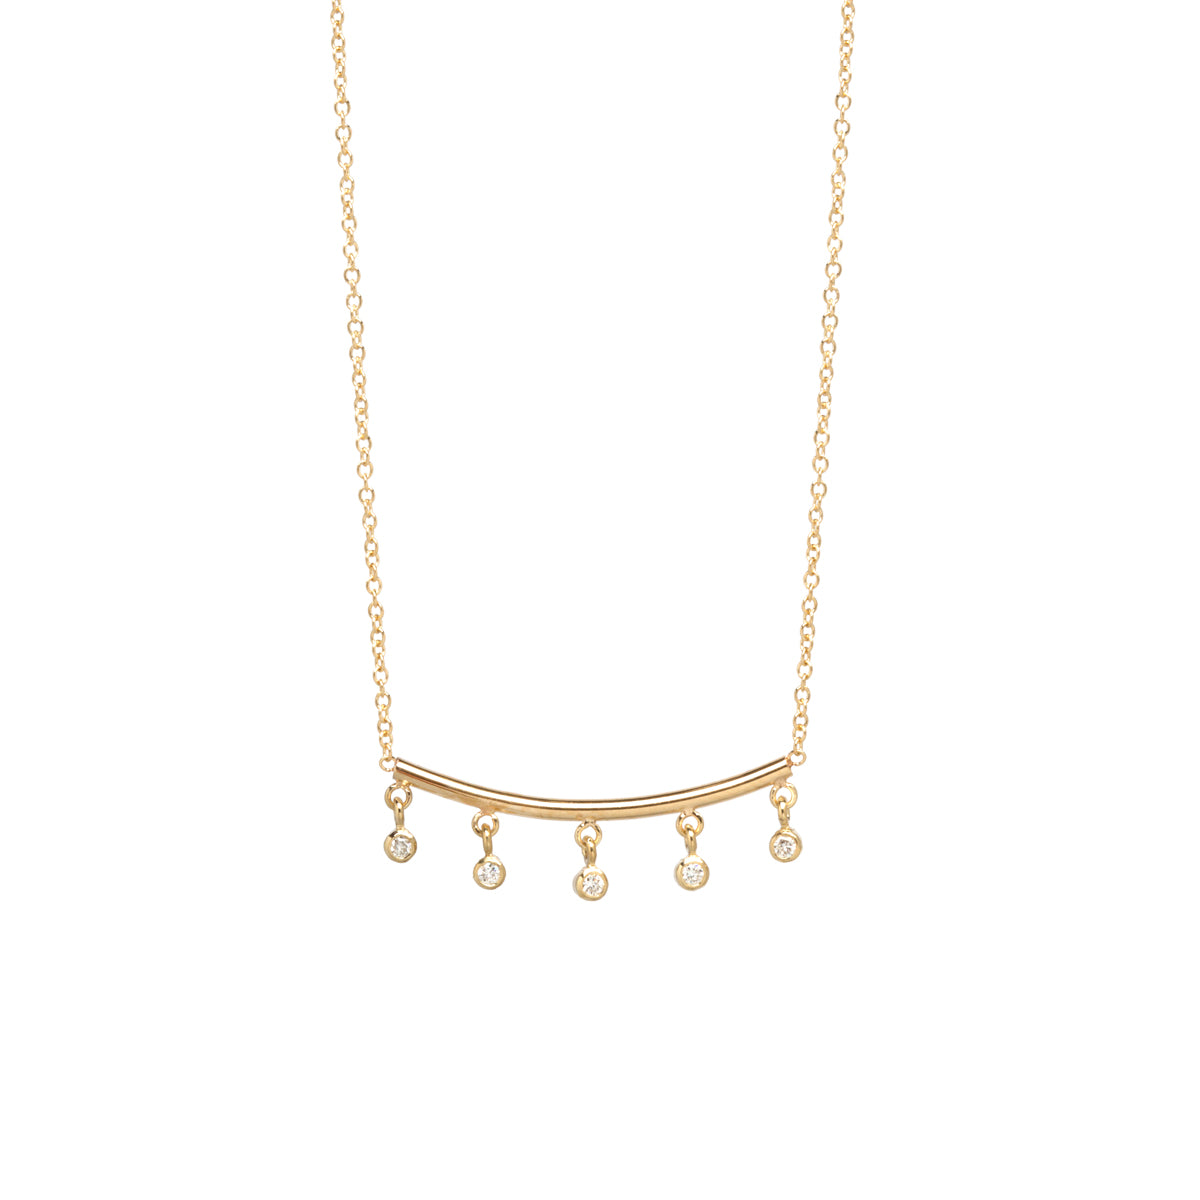 14k dangling bezel diamond bar necklace